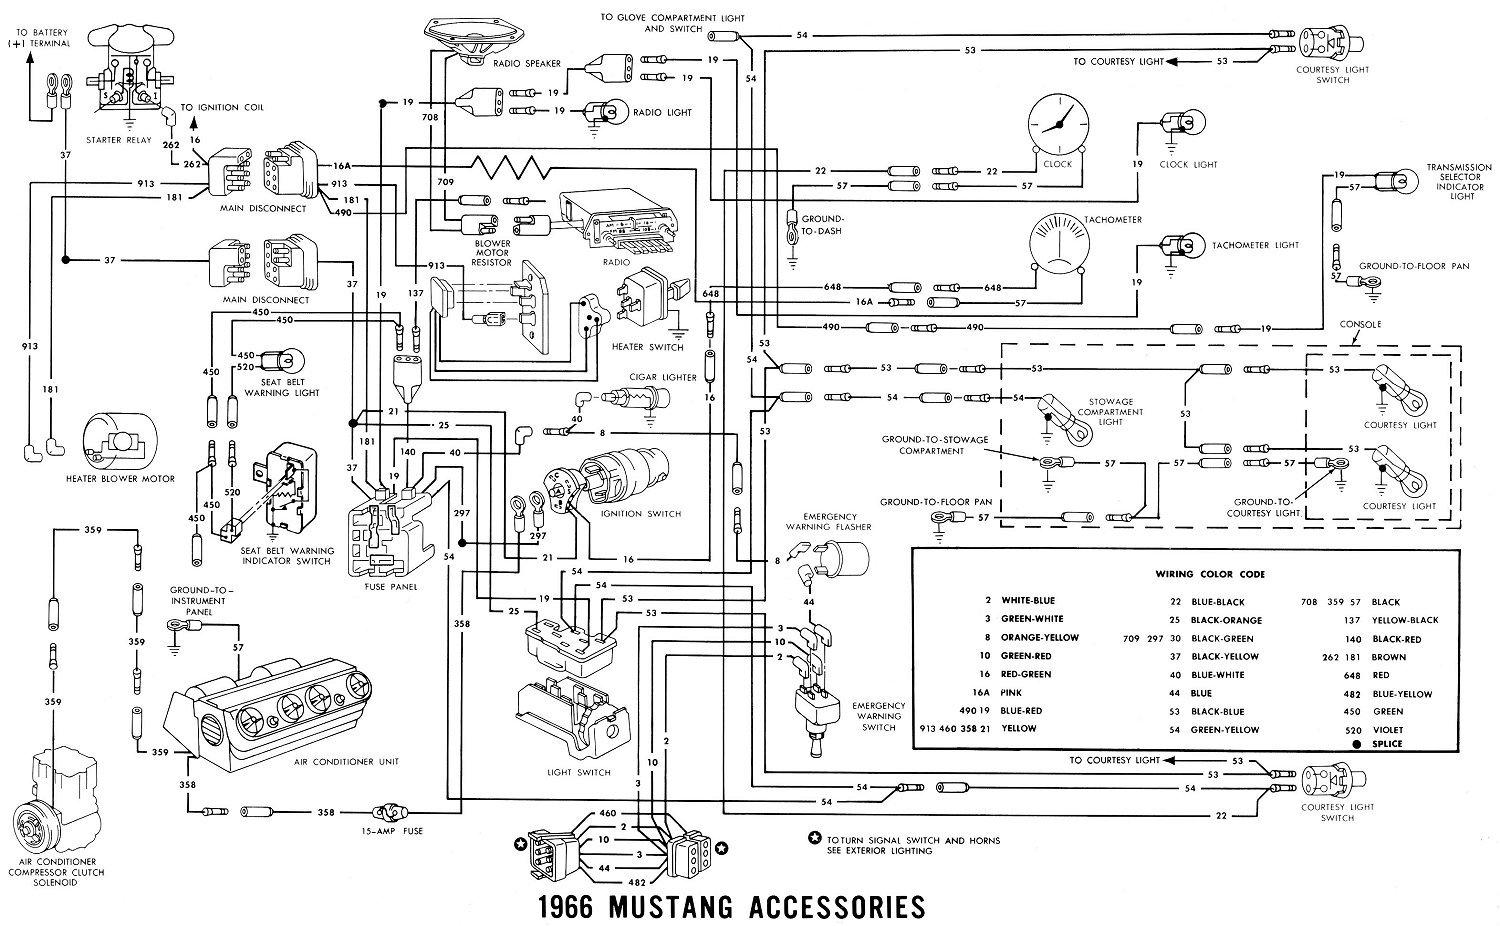 ... 66 accessories schematic ...